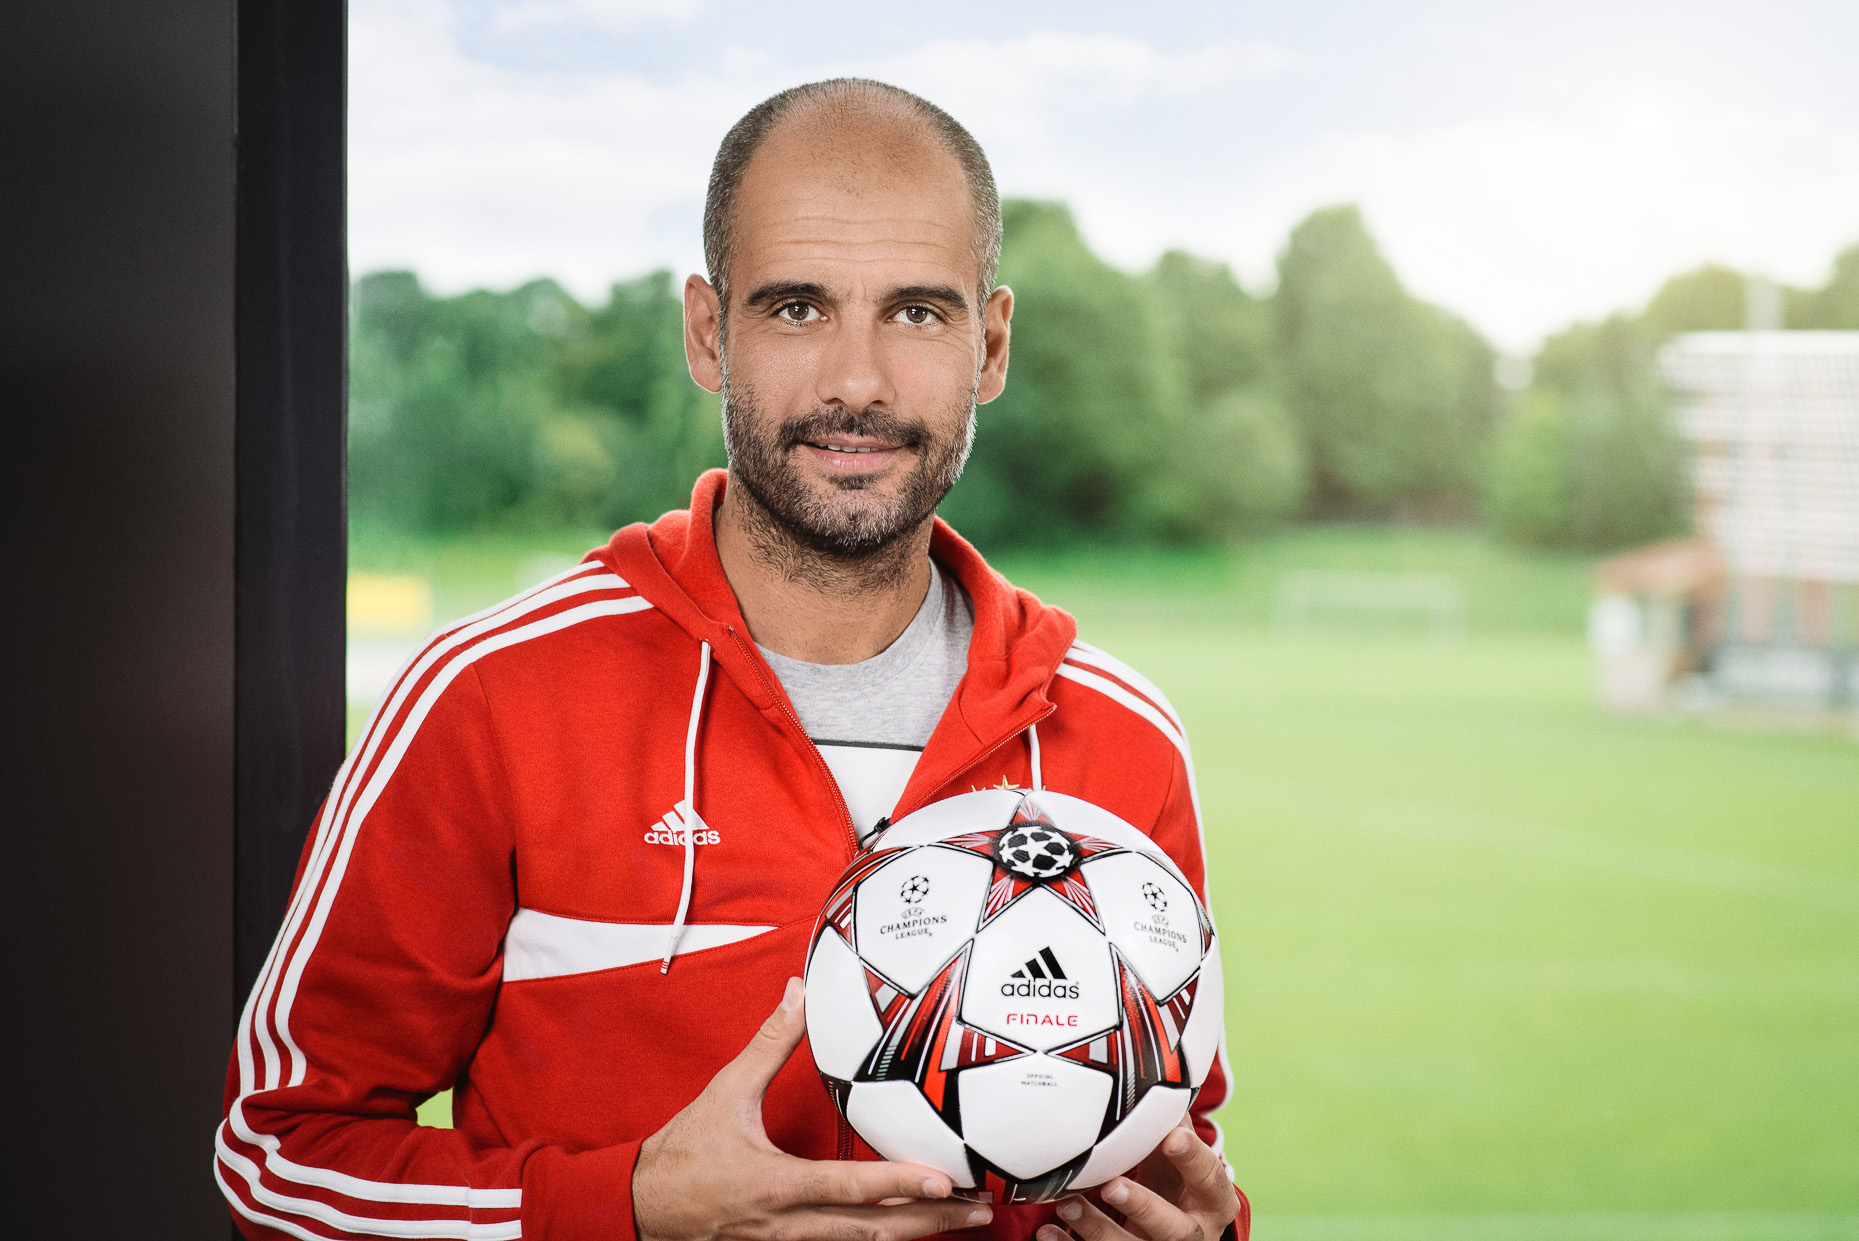 Adidas_wearesocial_Pep_Guardiola_Sep_2013_Munich_c_Brecheis-8318.jpg